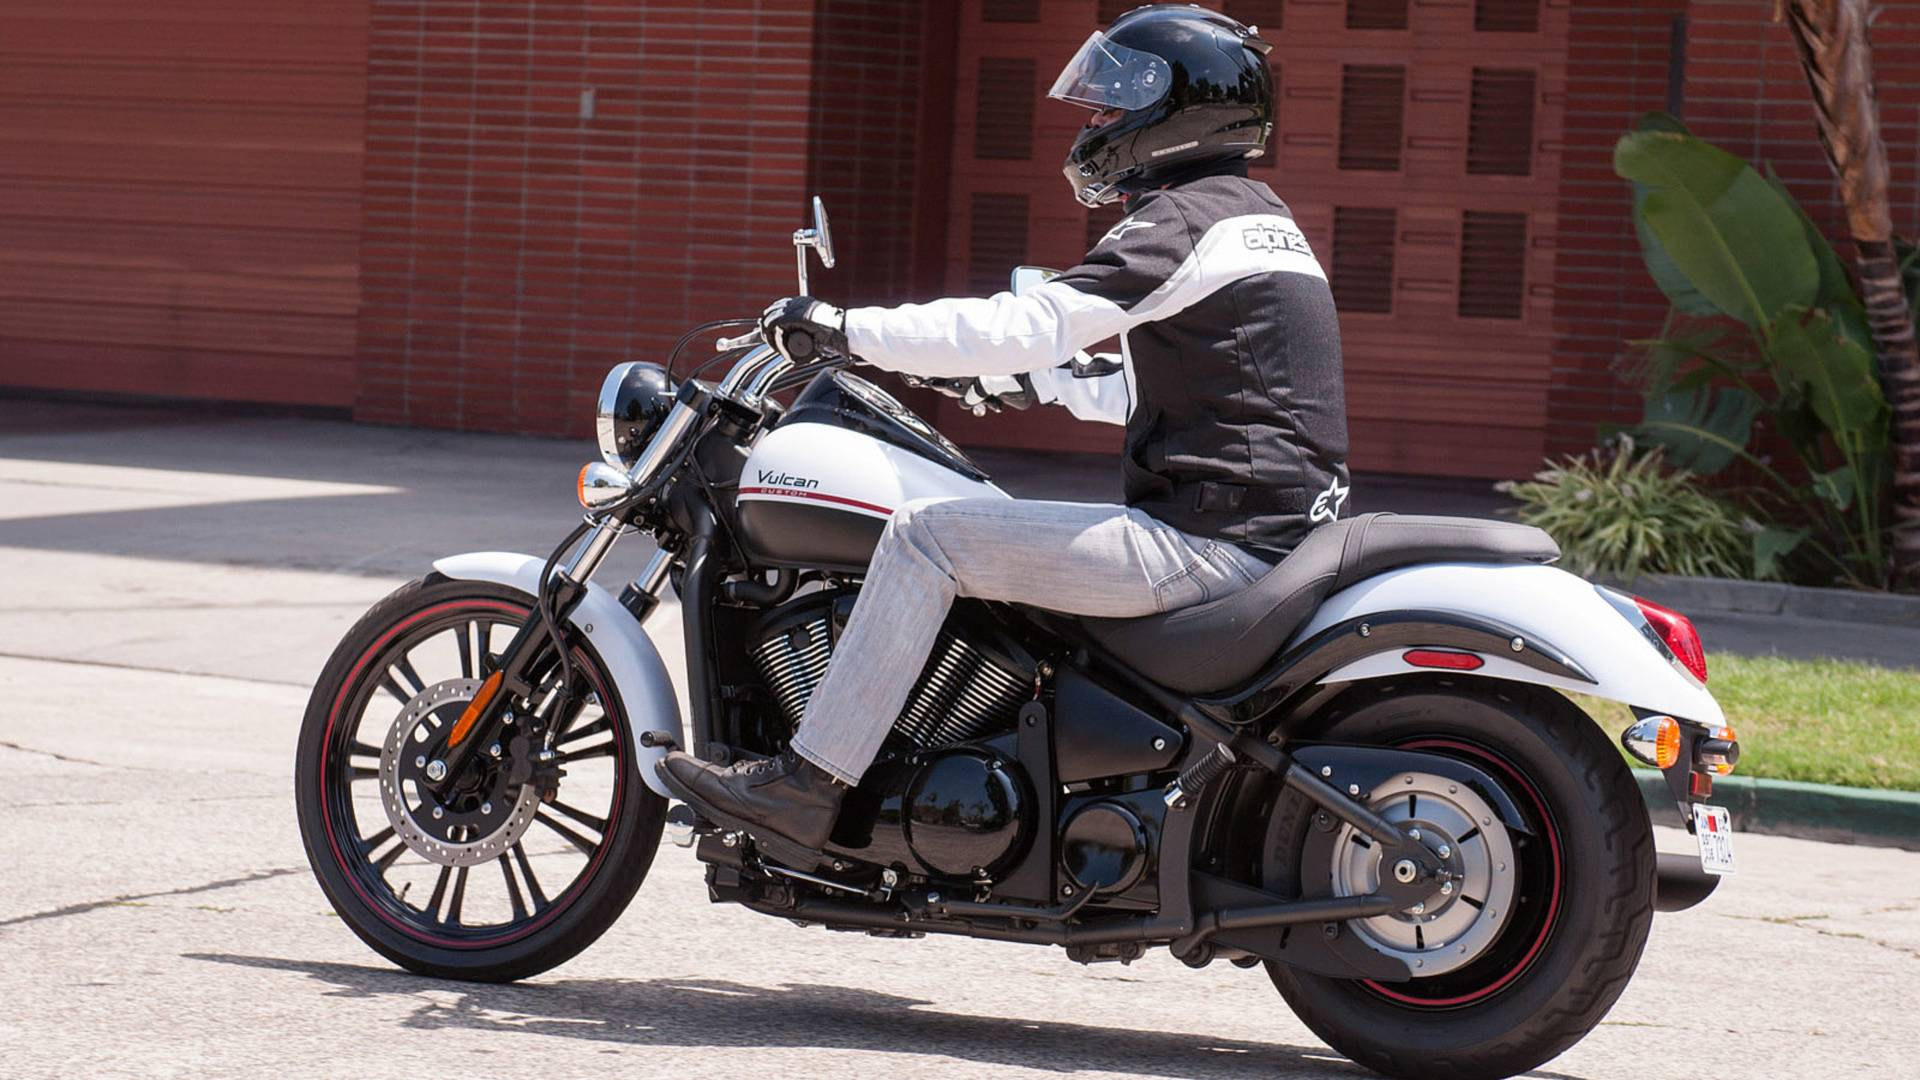 RideApart Review: 2013 Kawasaki Vulcan 900 Custom